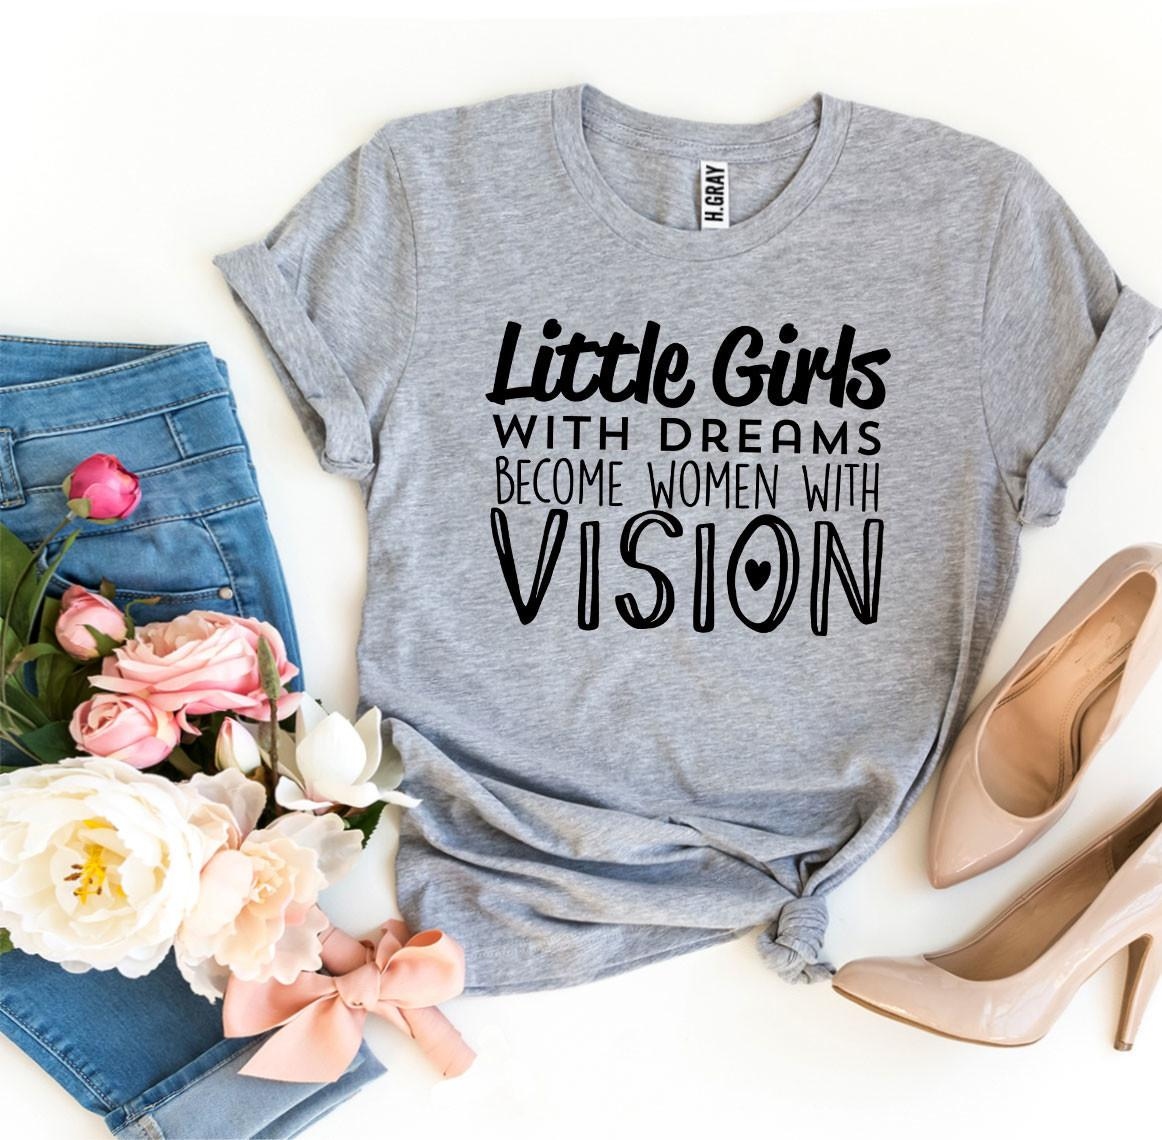 Little Girls With Dreams T-shirt | gymgiantgear